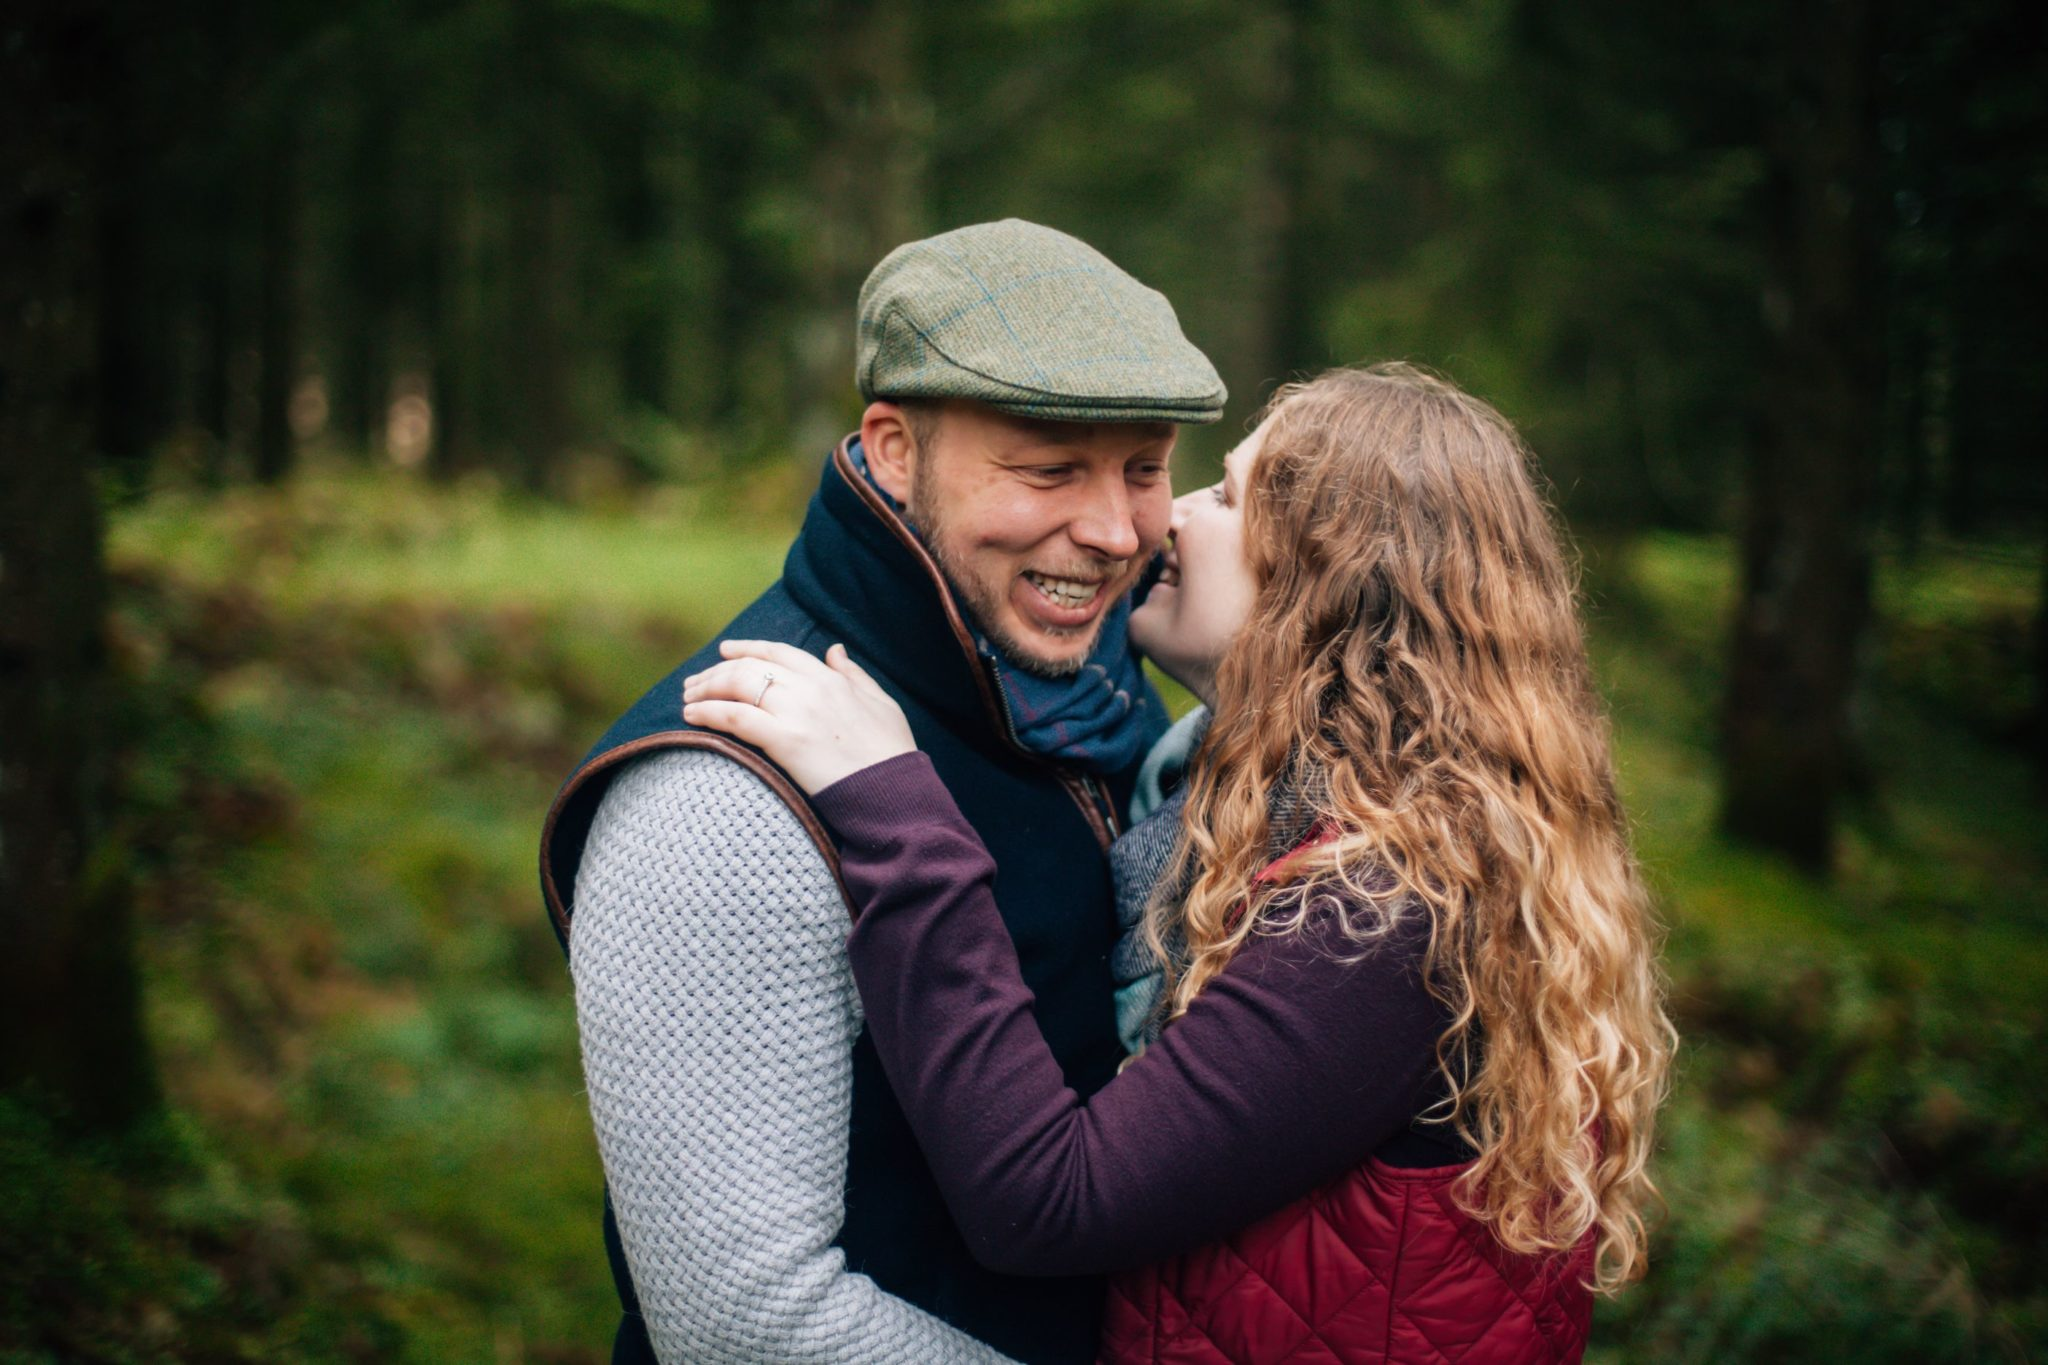 Engagement Photo Session in Stockhill Woods With Dog